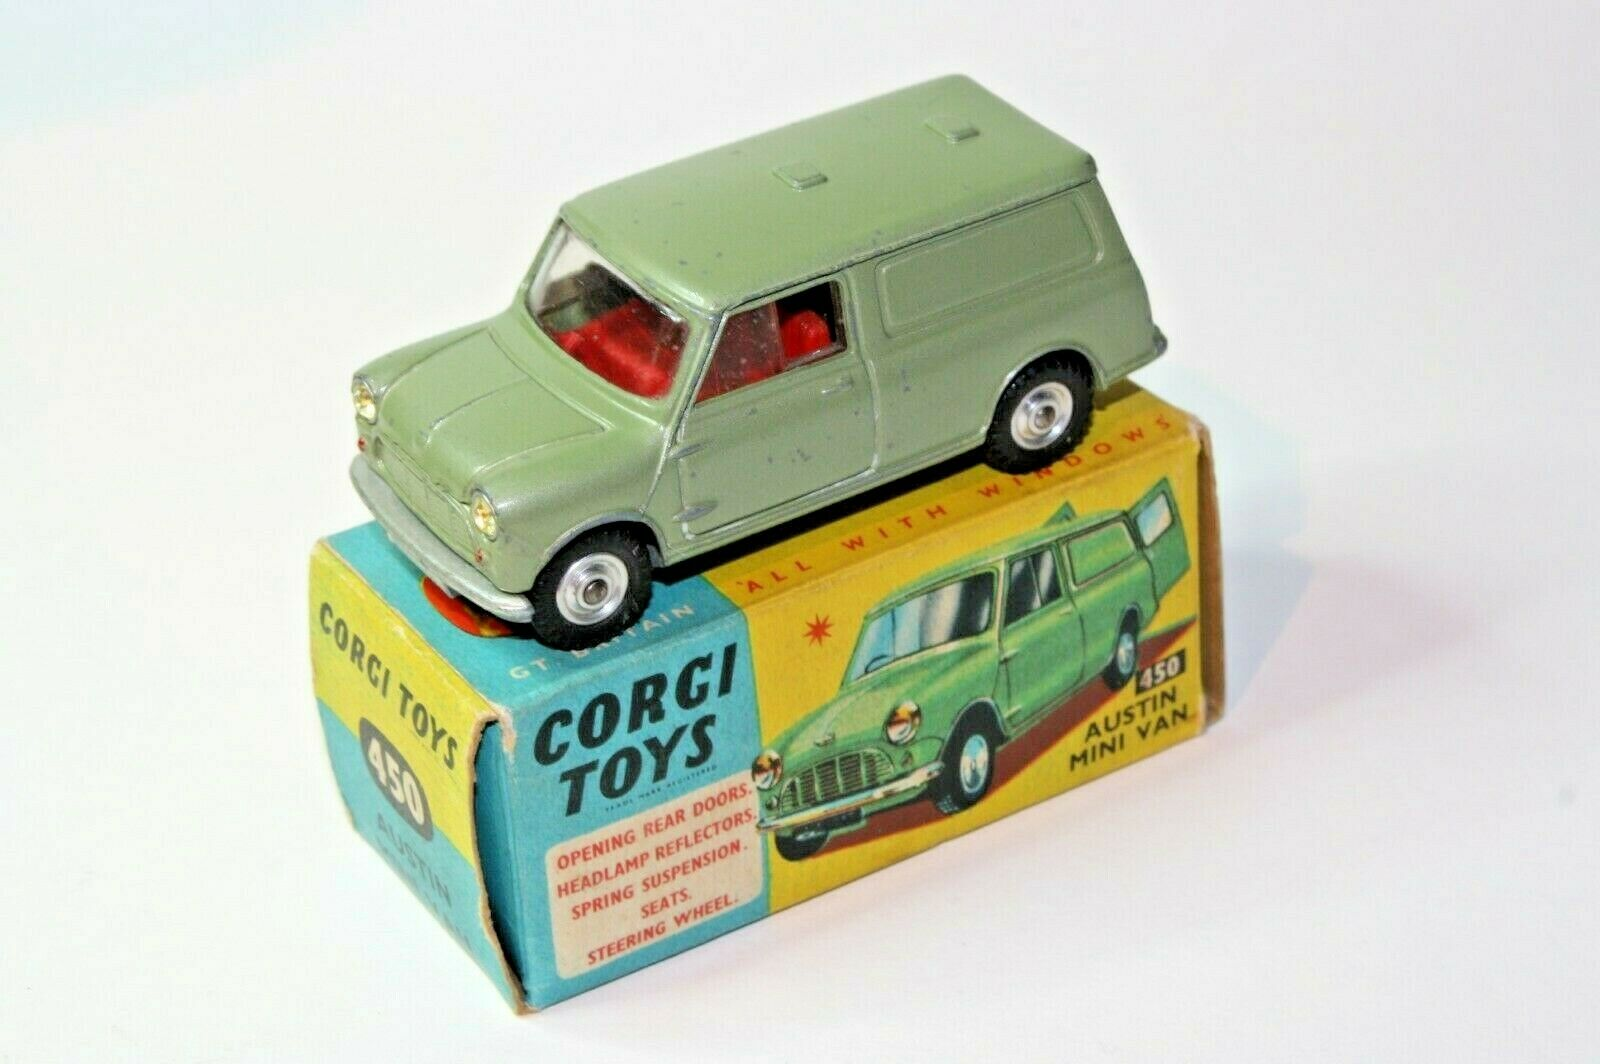 Corgi Mini Van, Excellent Condition in Good Original Box